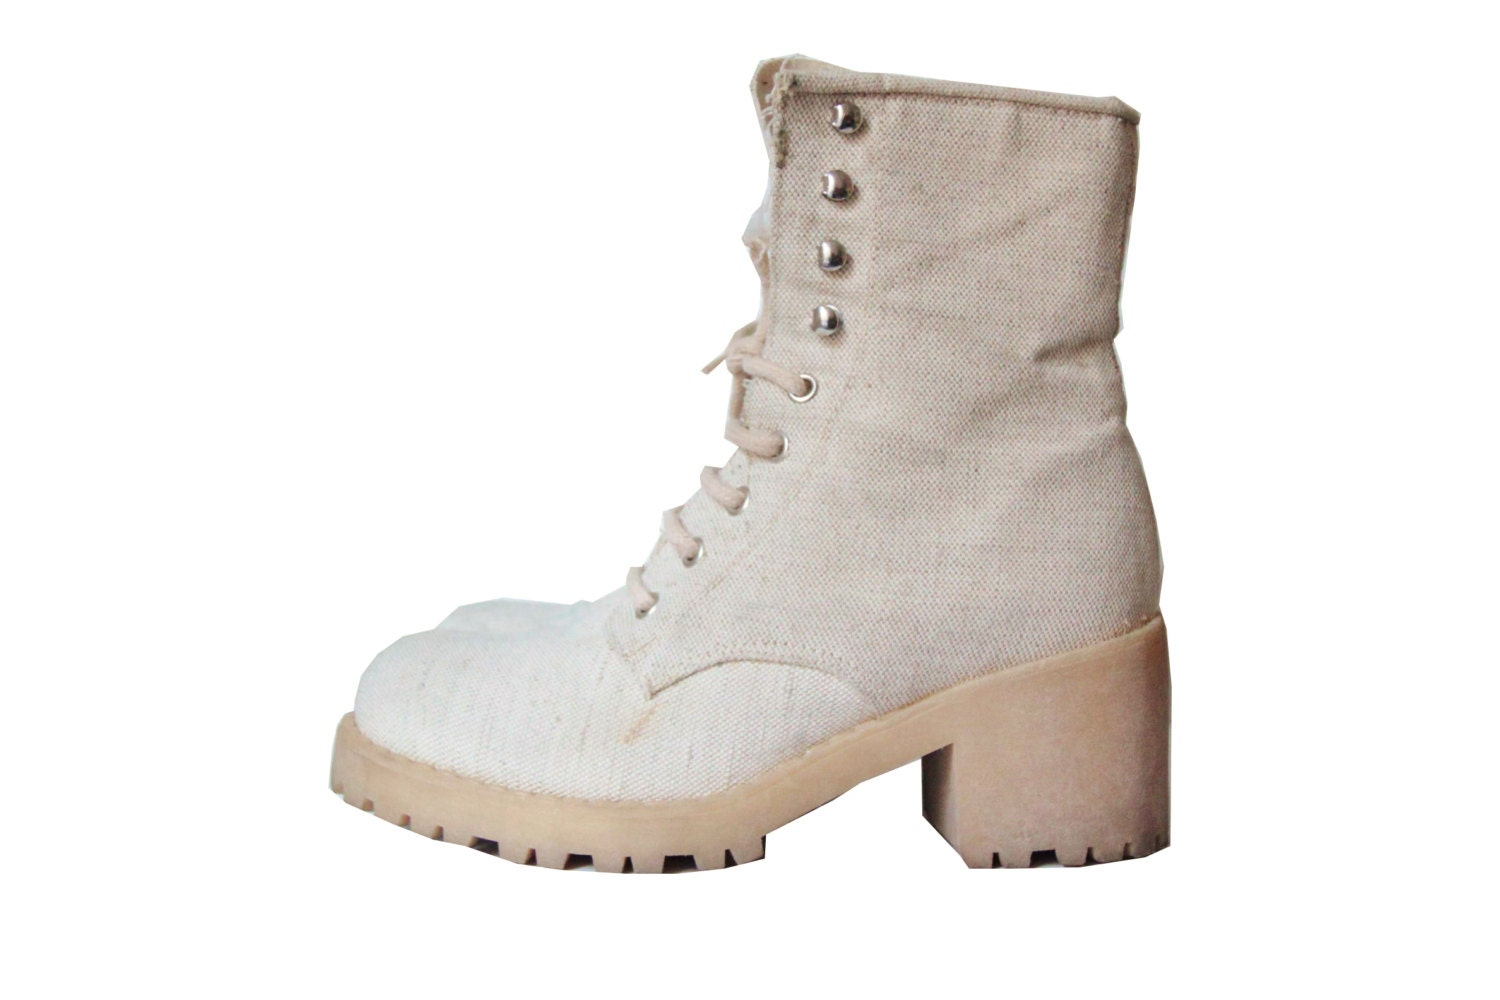 90s Combat Boots Beige Canvas Chunky Platform Rubber Sole